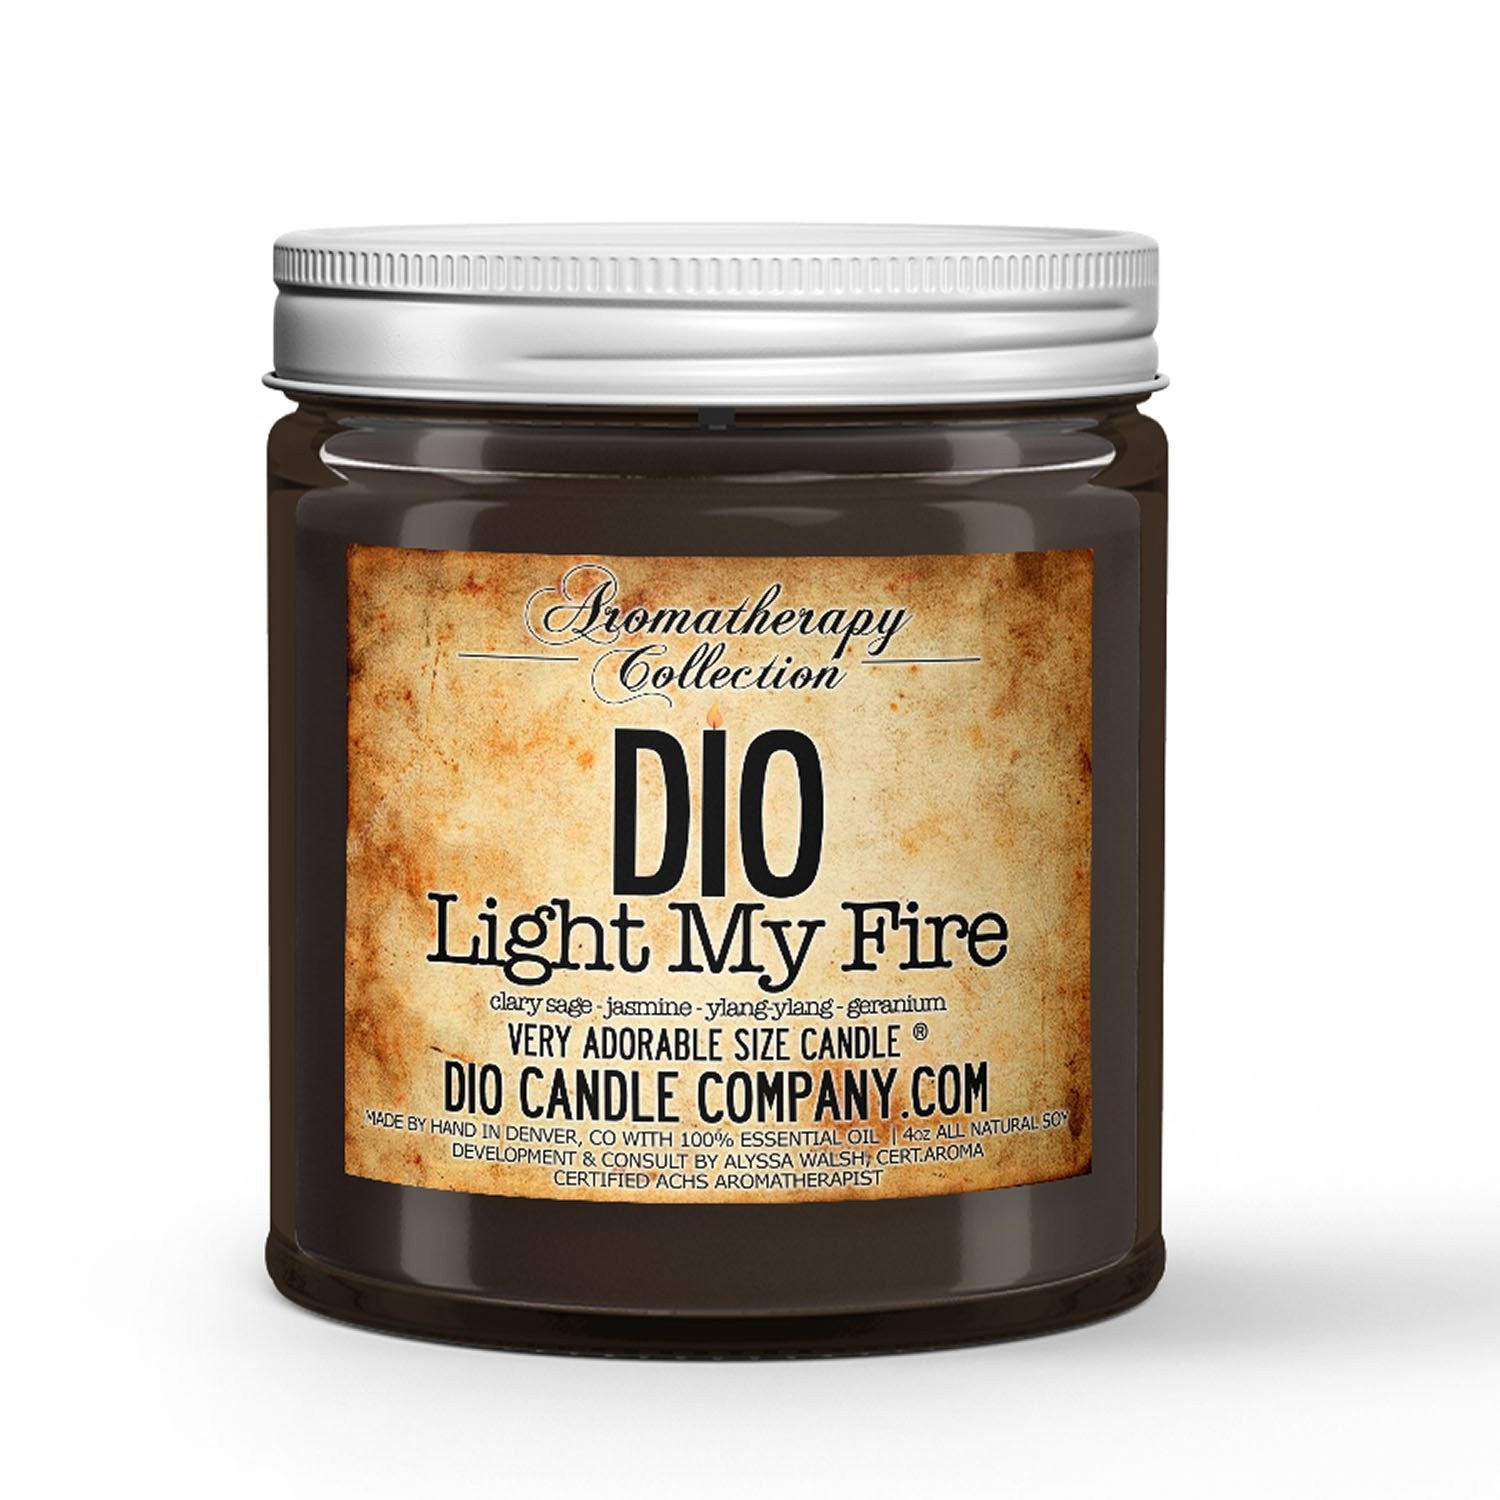 Light My Fire Aromatherapy Candle Clary Sage - Jasmine - Ylang Ylang - Geranium Scented - Dio Candle Company